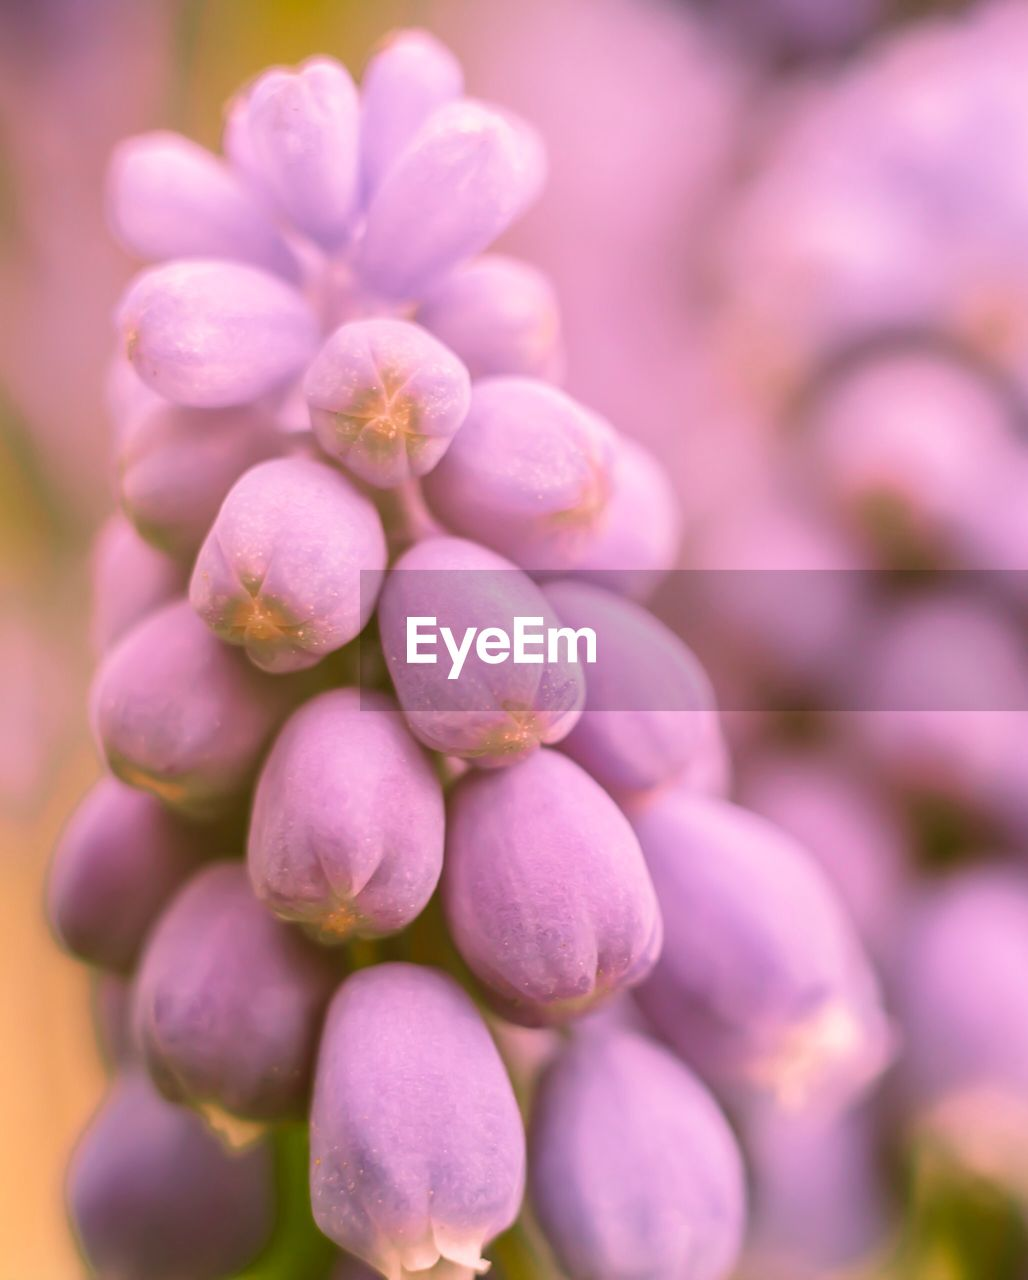 freshness, close-up, flowering plant, flower, beauty in nature, plant, fragility, vulnerability, growth, selective focus, day, pink color, no people, nature, purple, petal, focus on foreground, outdoors, bud, inflorescence, flower head